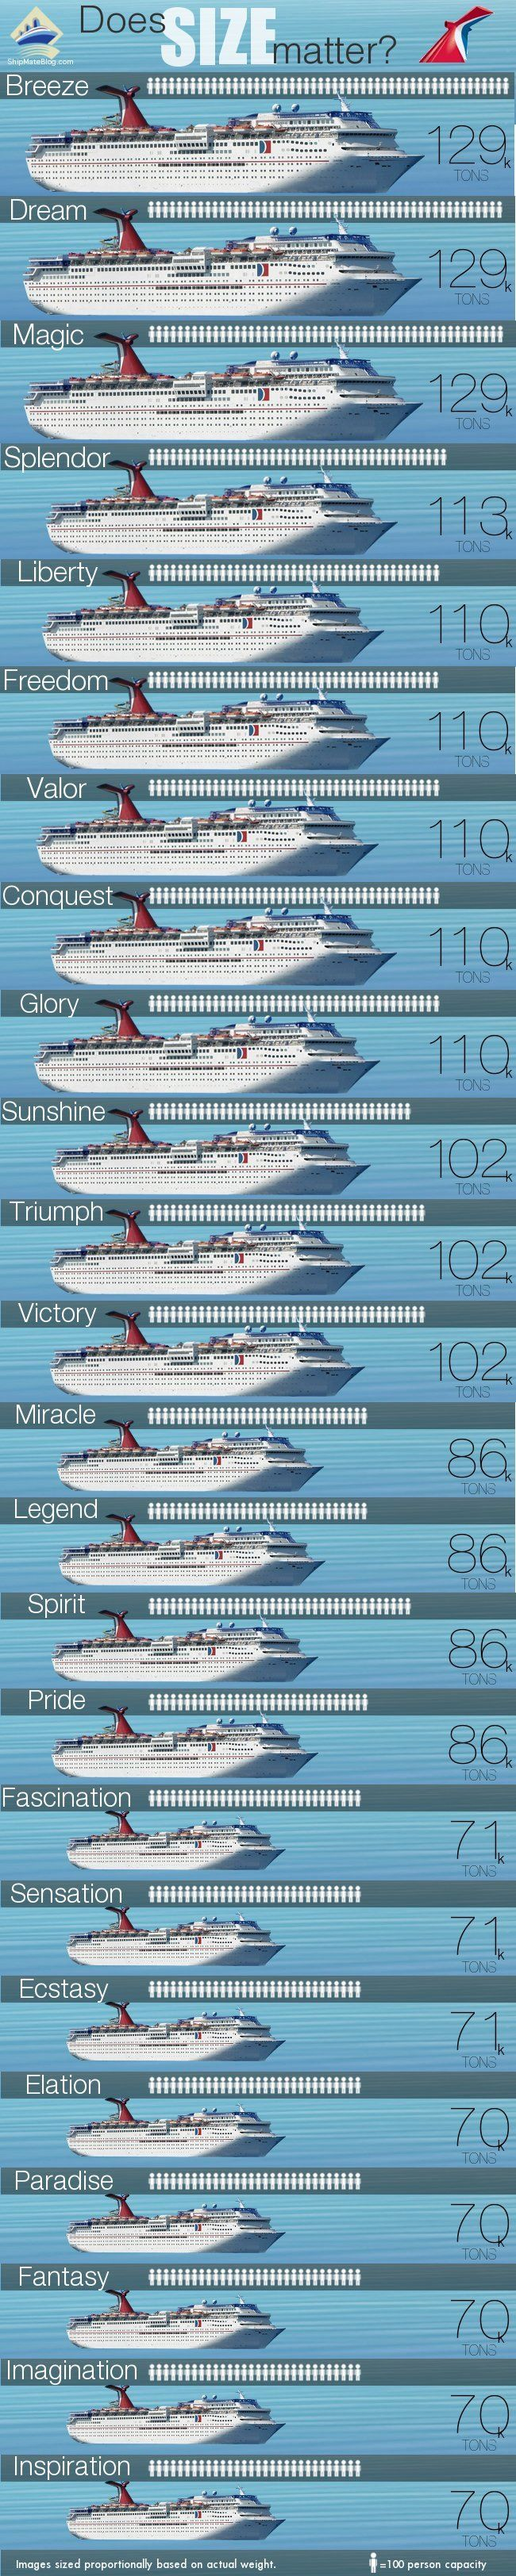 Carnival-Cruise-Ships-Size-Comparison